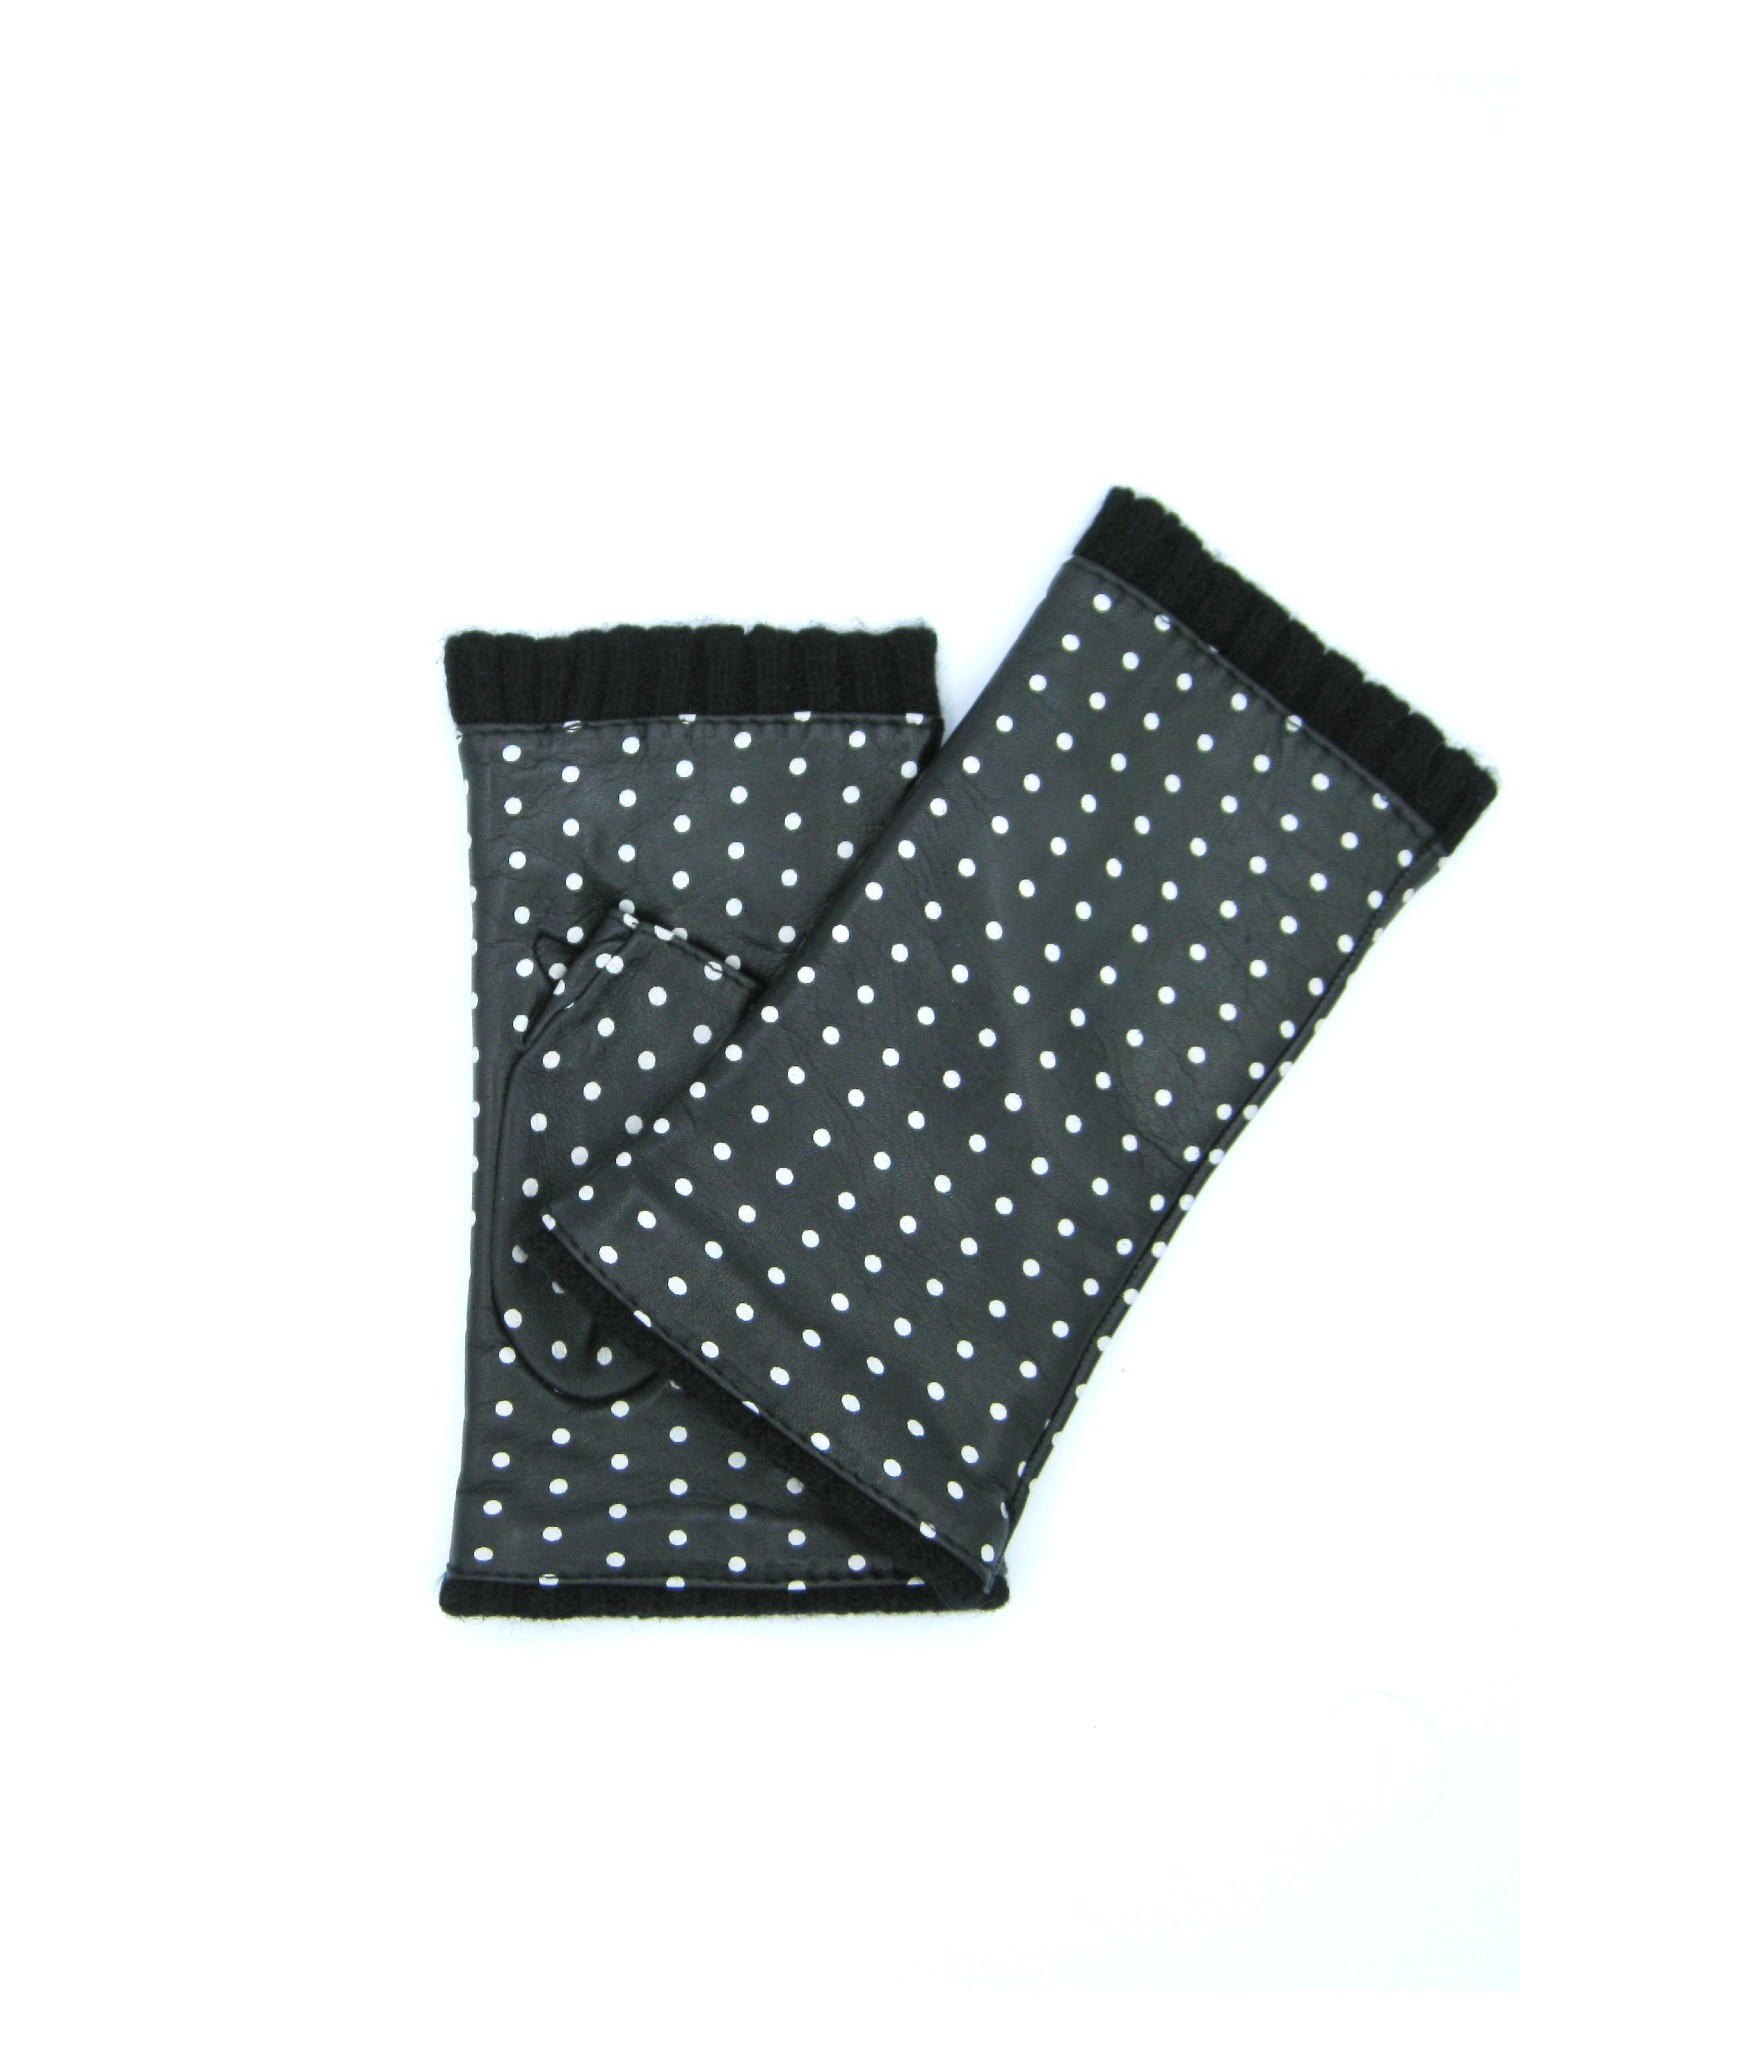 Half Mitten in Nappa leather with polka dots cashmere lined